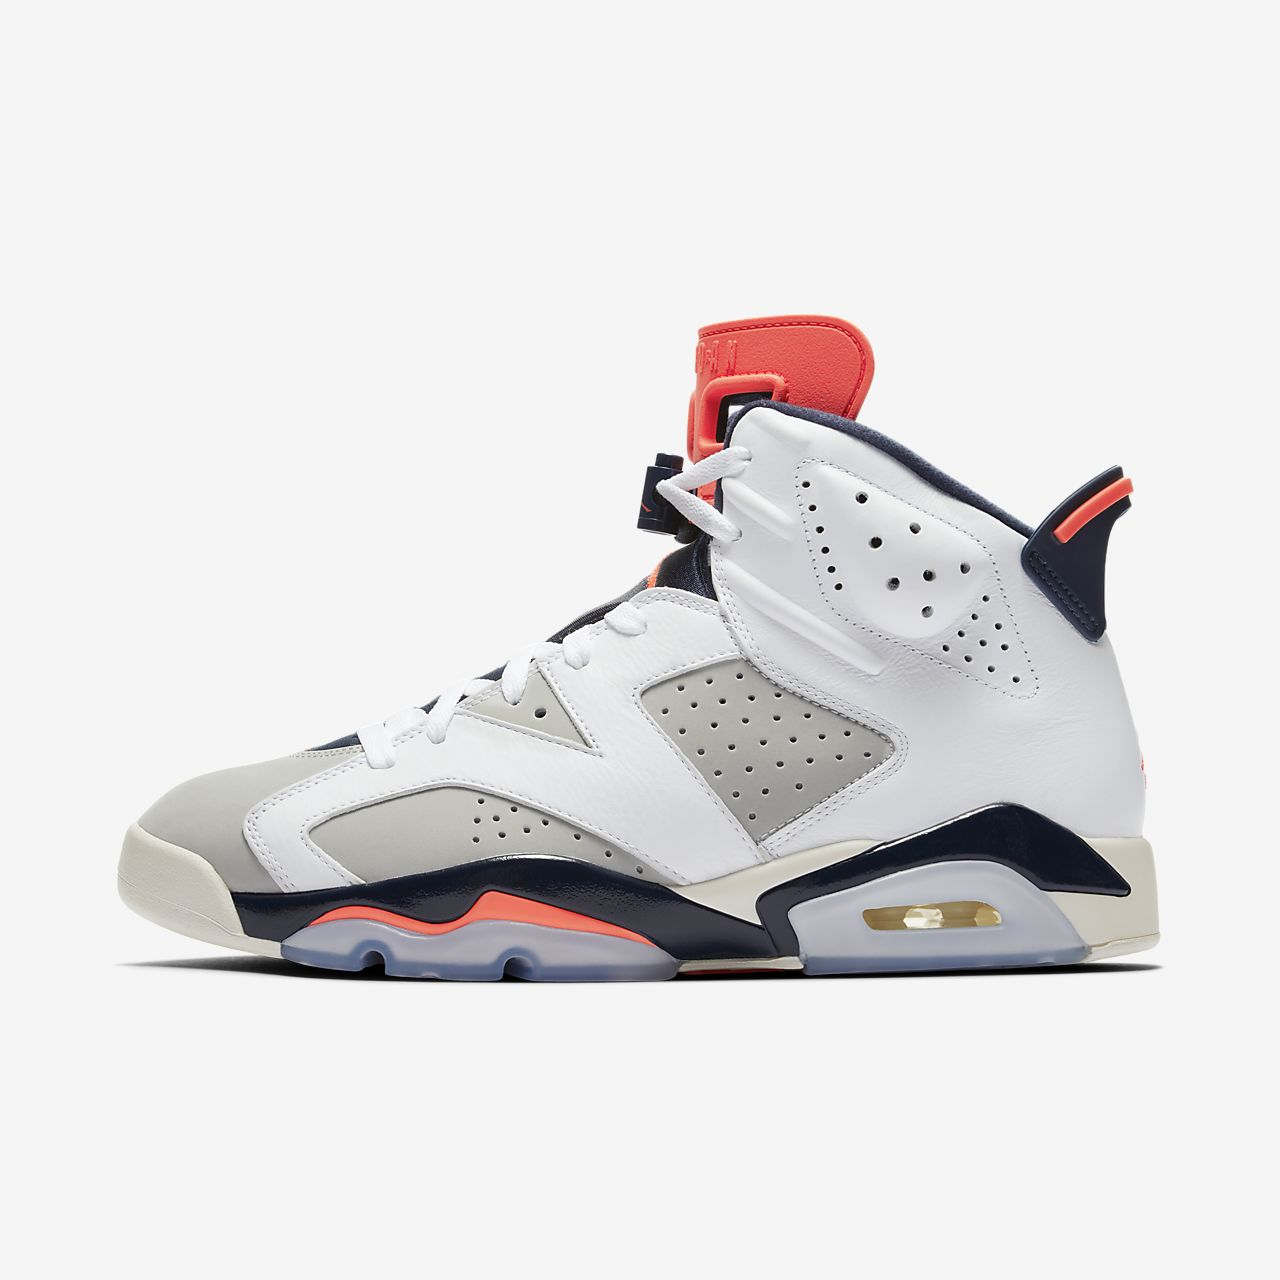 6defc777261 Air Jordan 6 Retro Men's Shoe. Nike.com SG